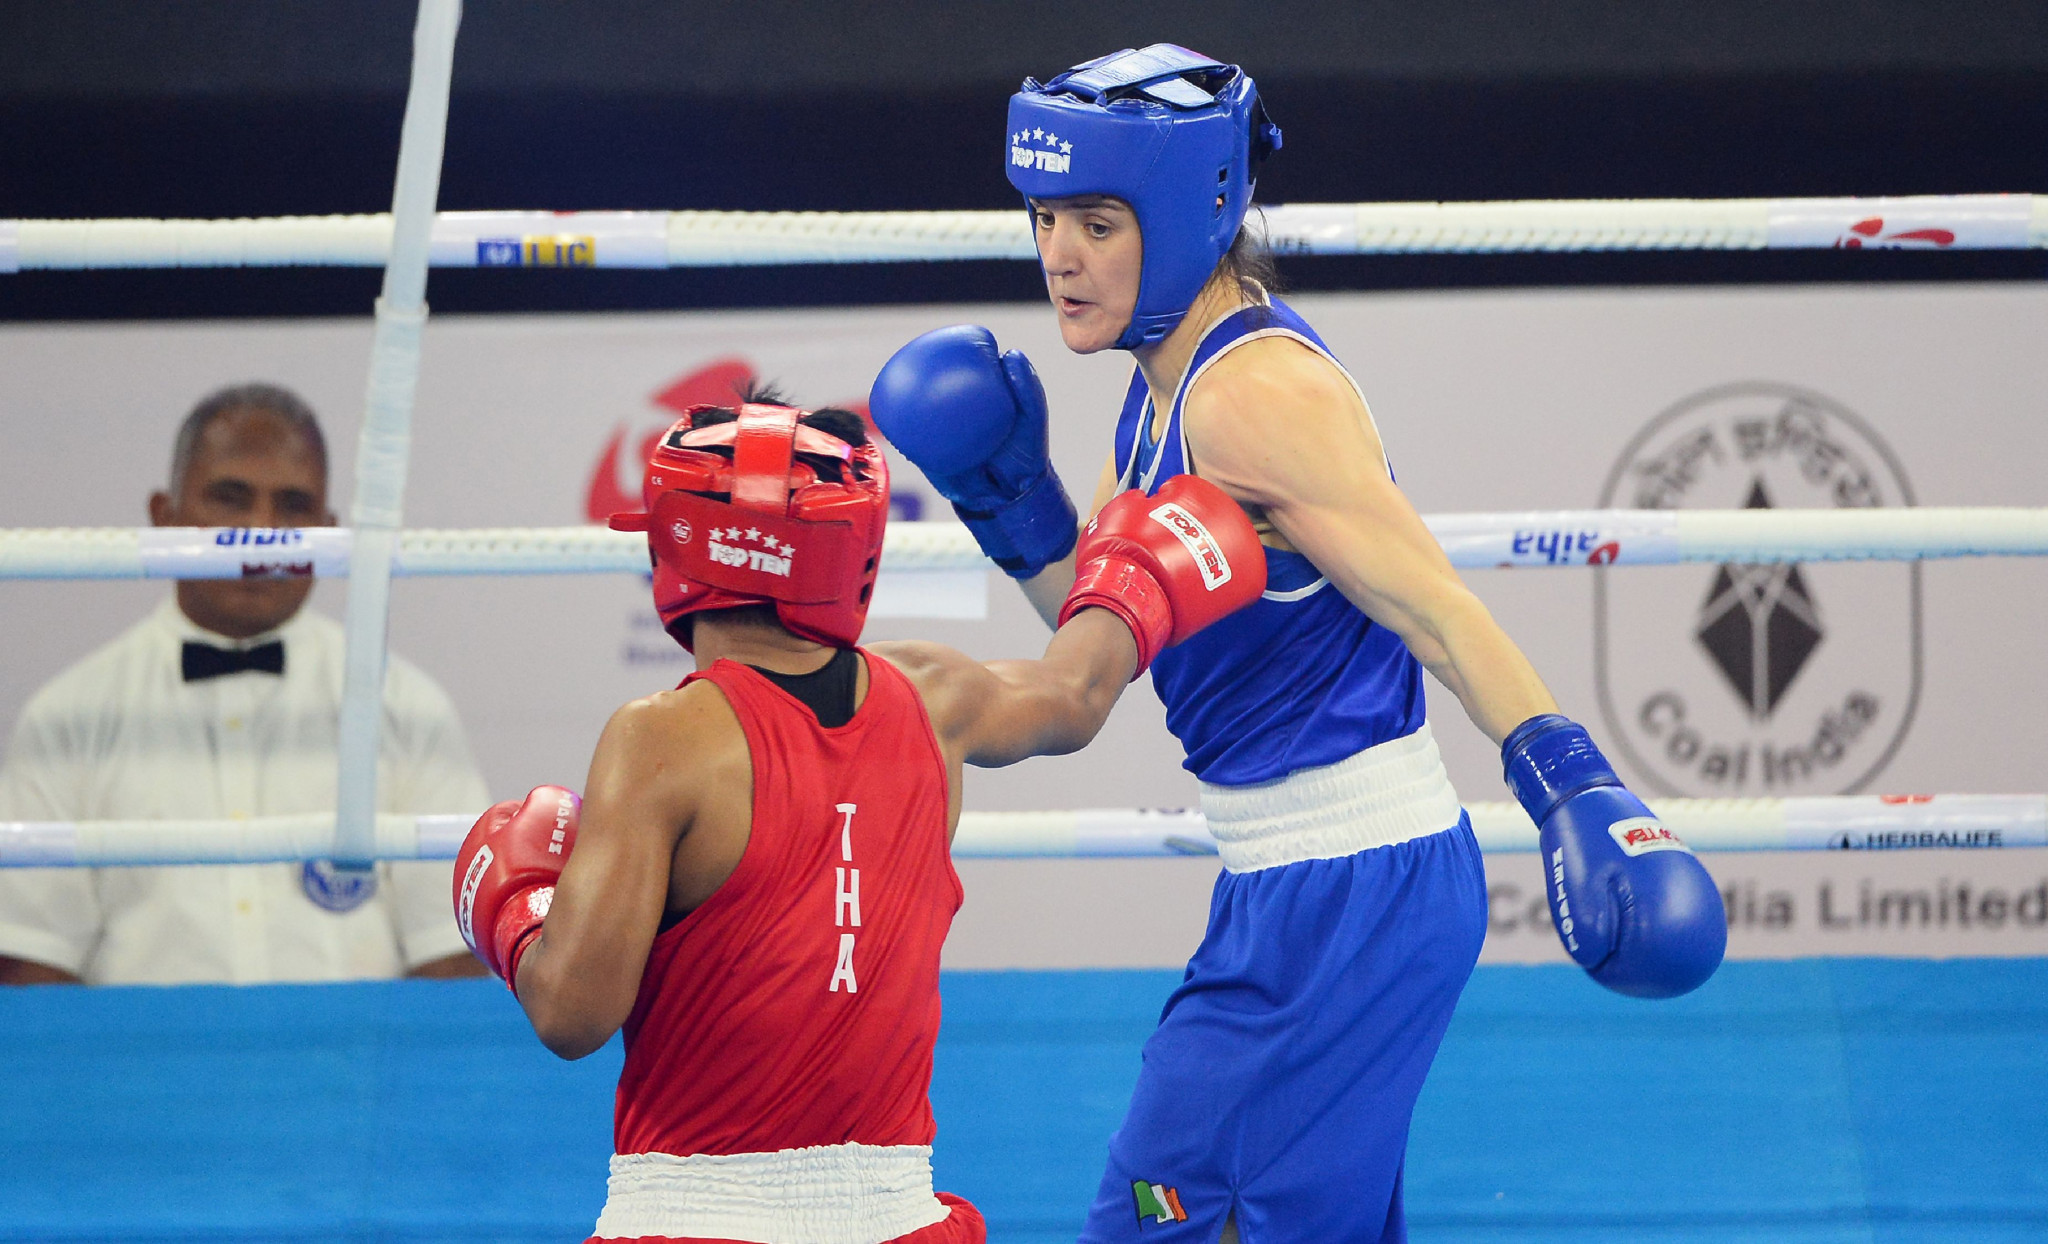 Boxing world champion Harrington not worrying about potential Tokyo 2020 cancellation